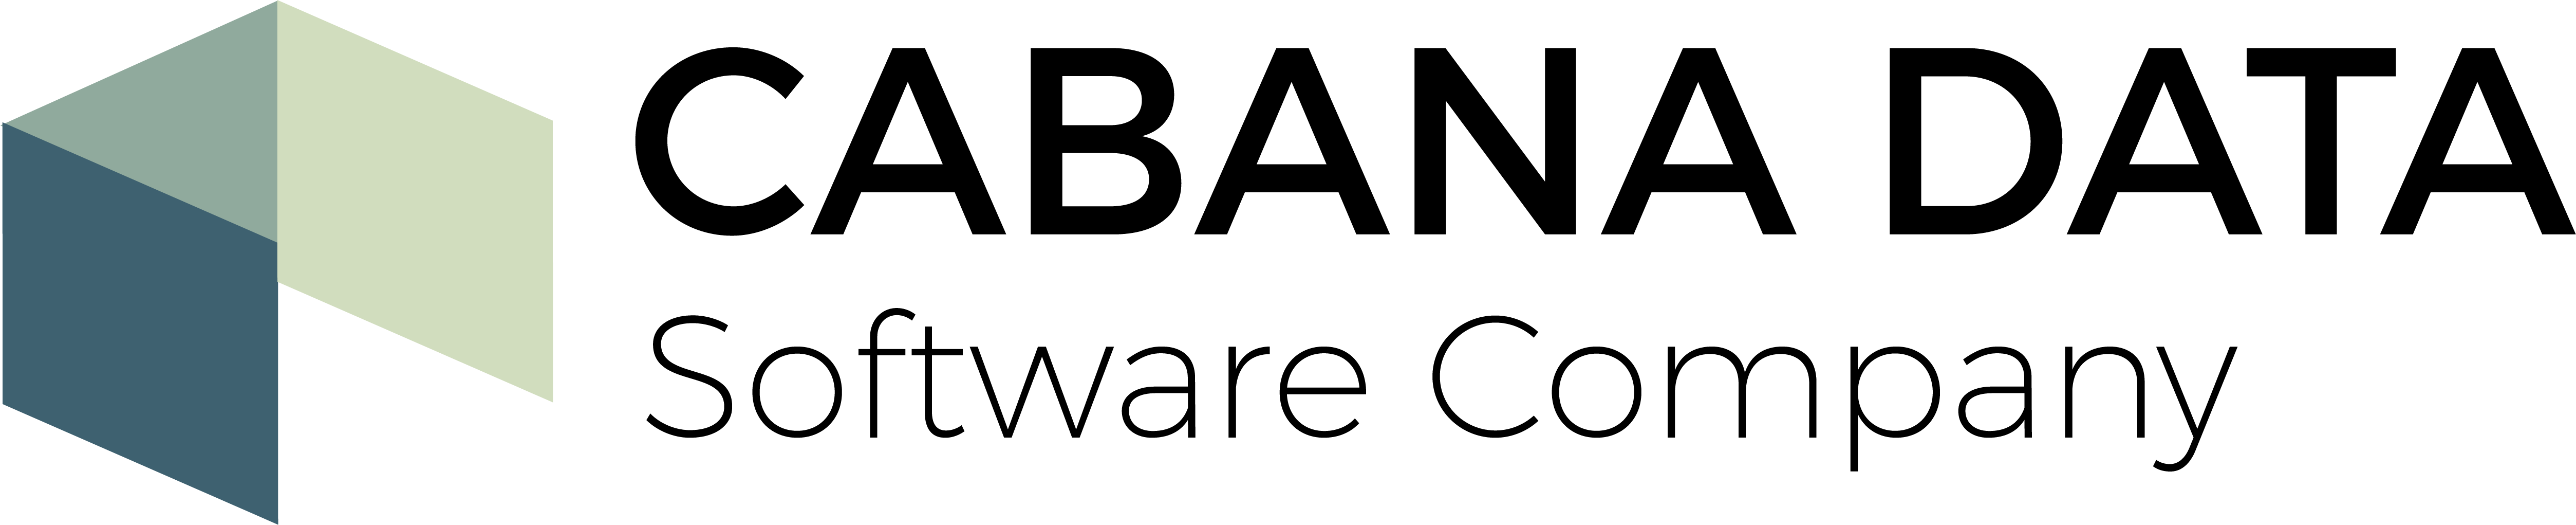 Cabana Data Software